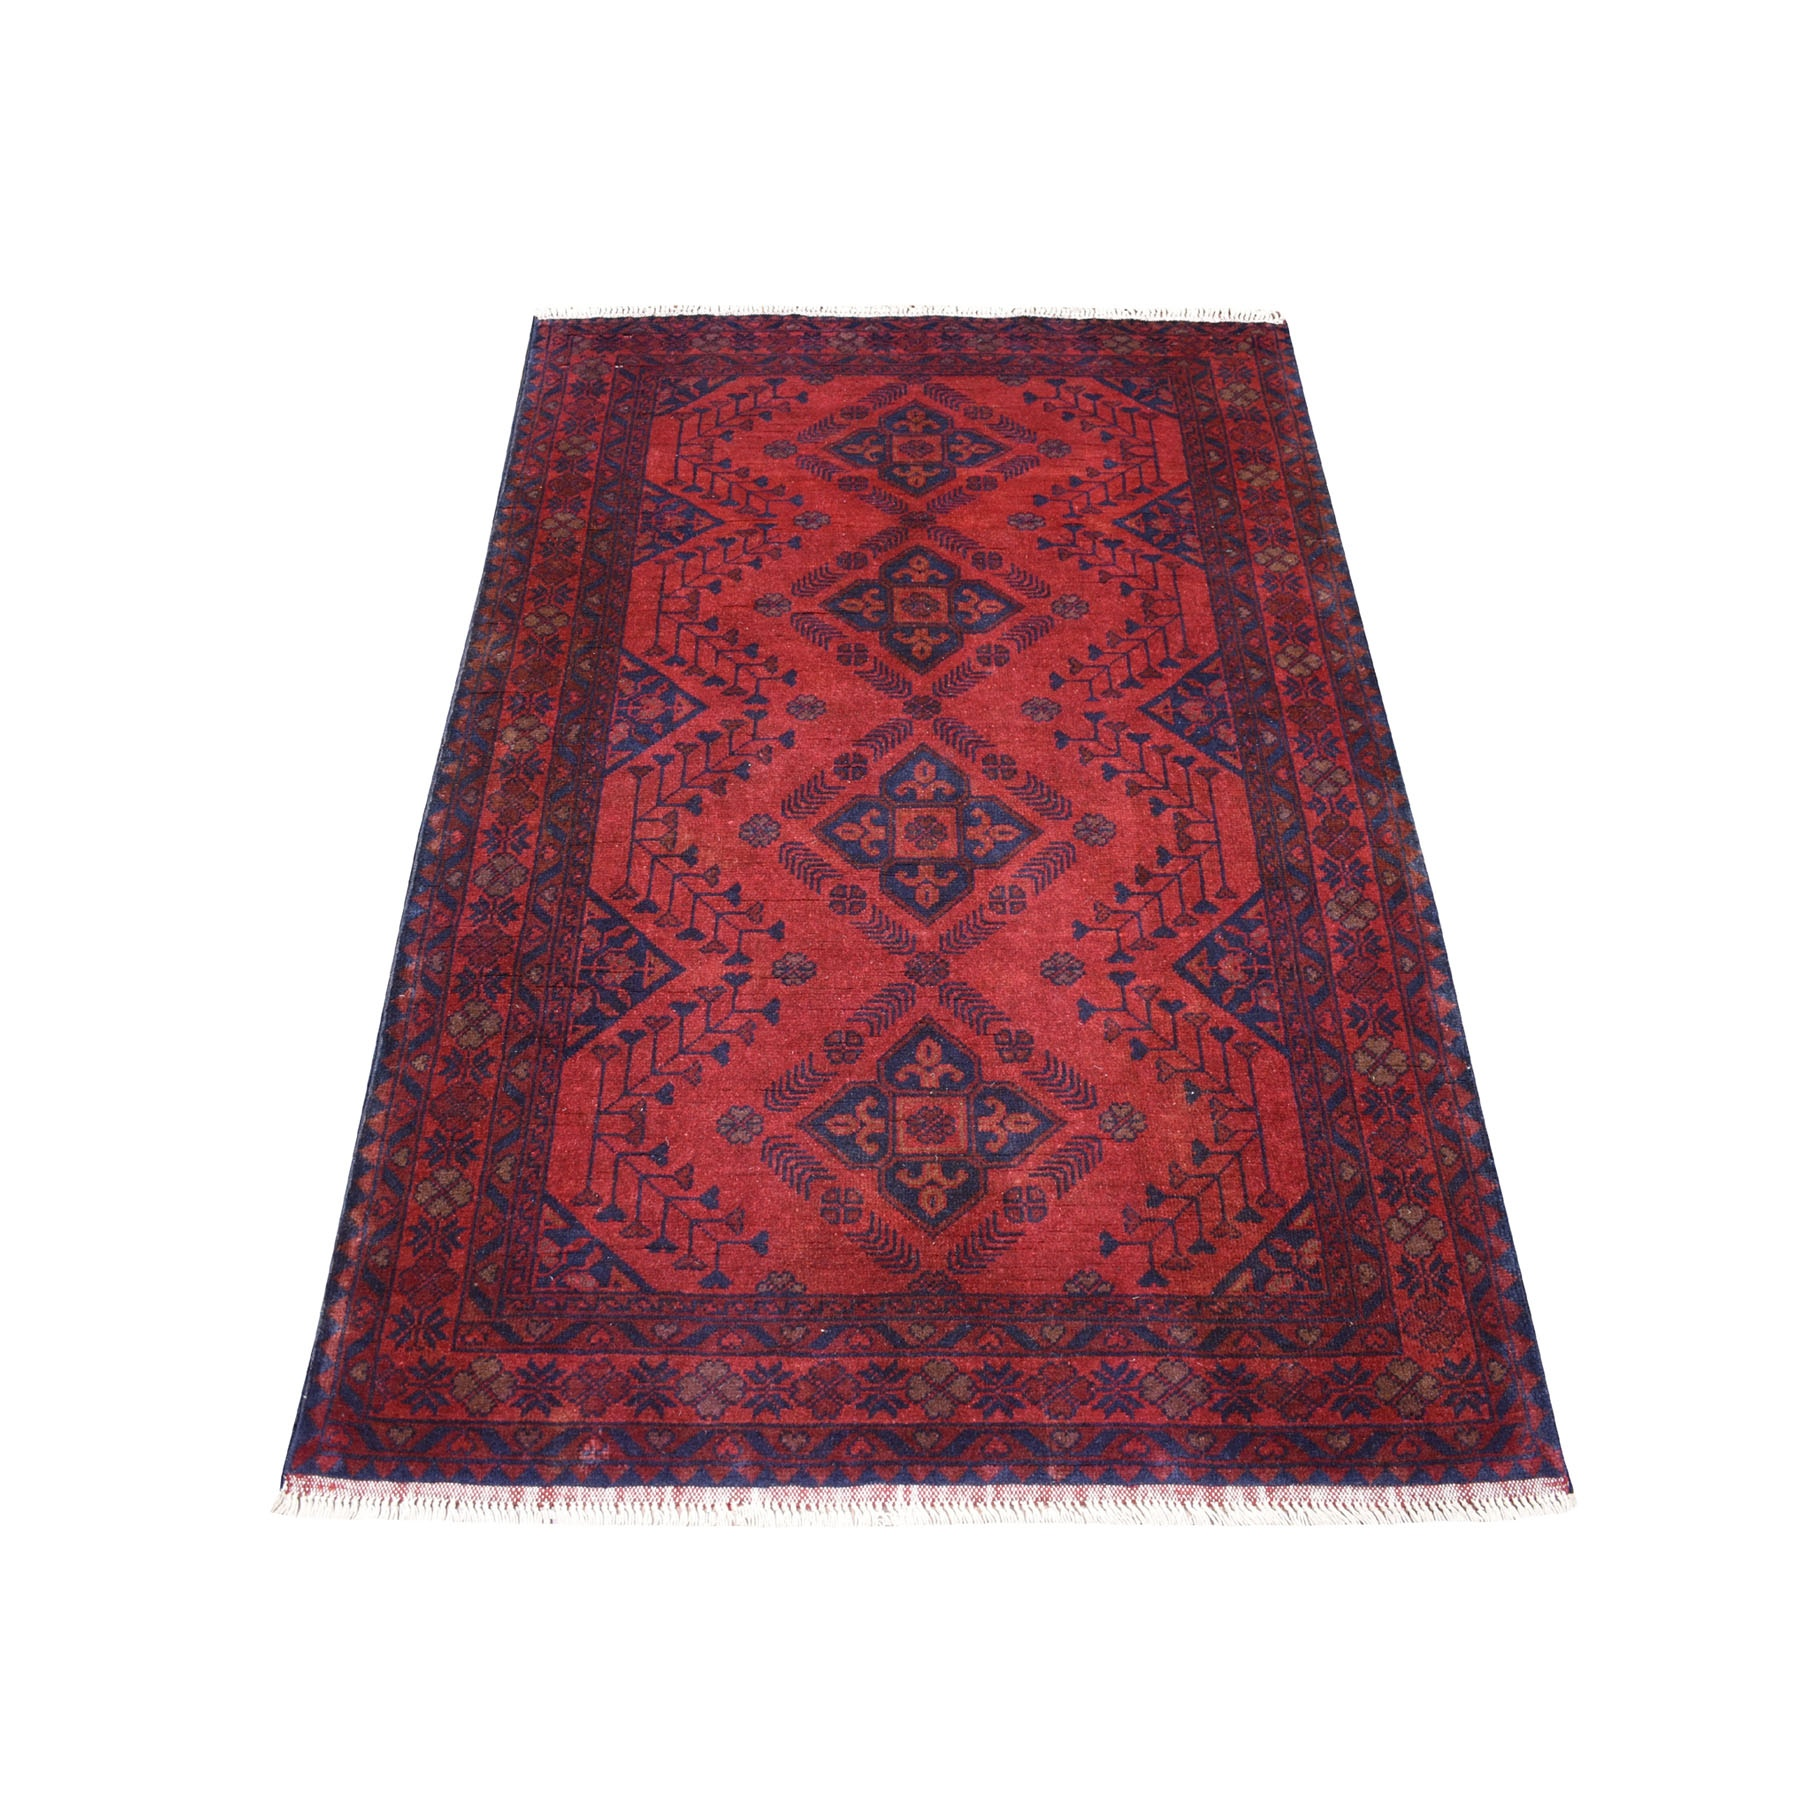 "3'4""x5' Deep and Saturated Red Geometric Design Afghan Andkhoy Pure Wool Hand-Knotted Oriental Rug"